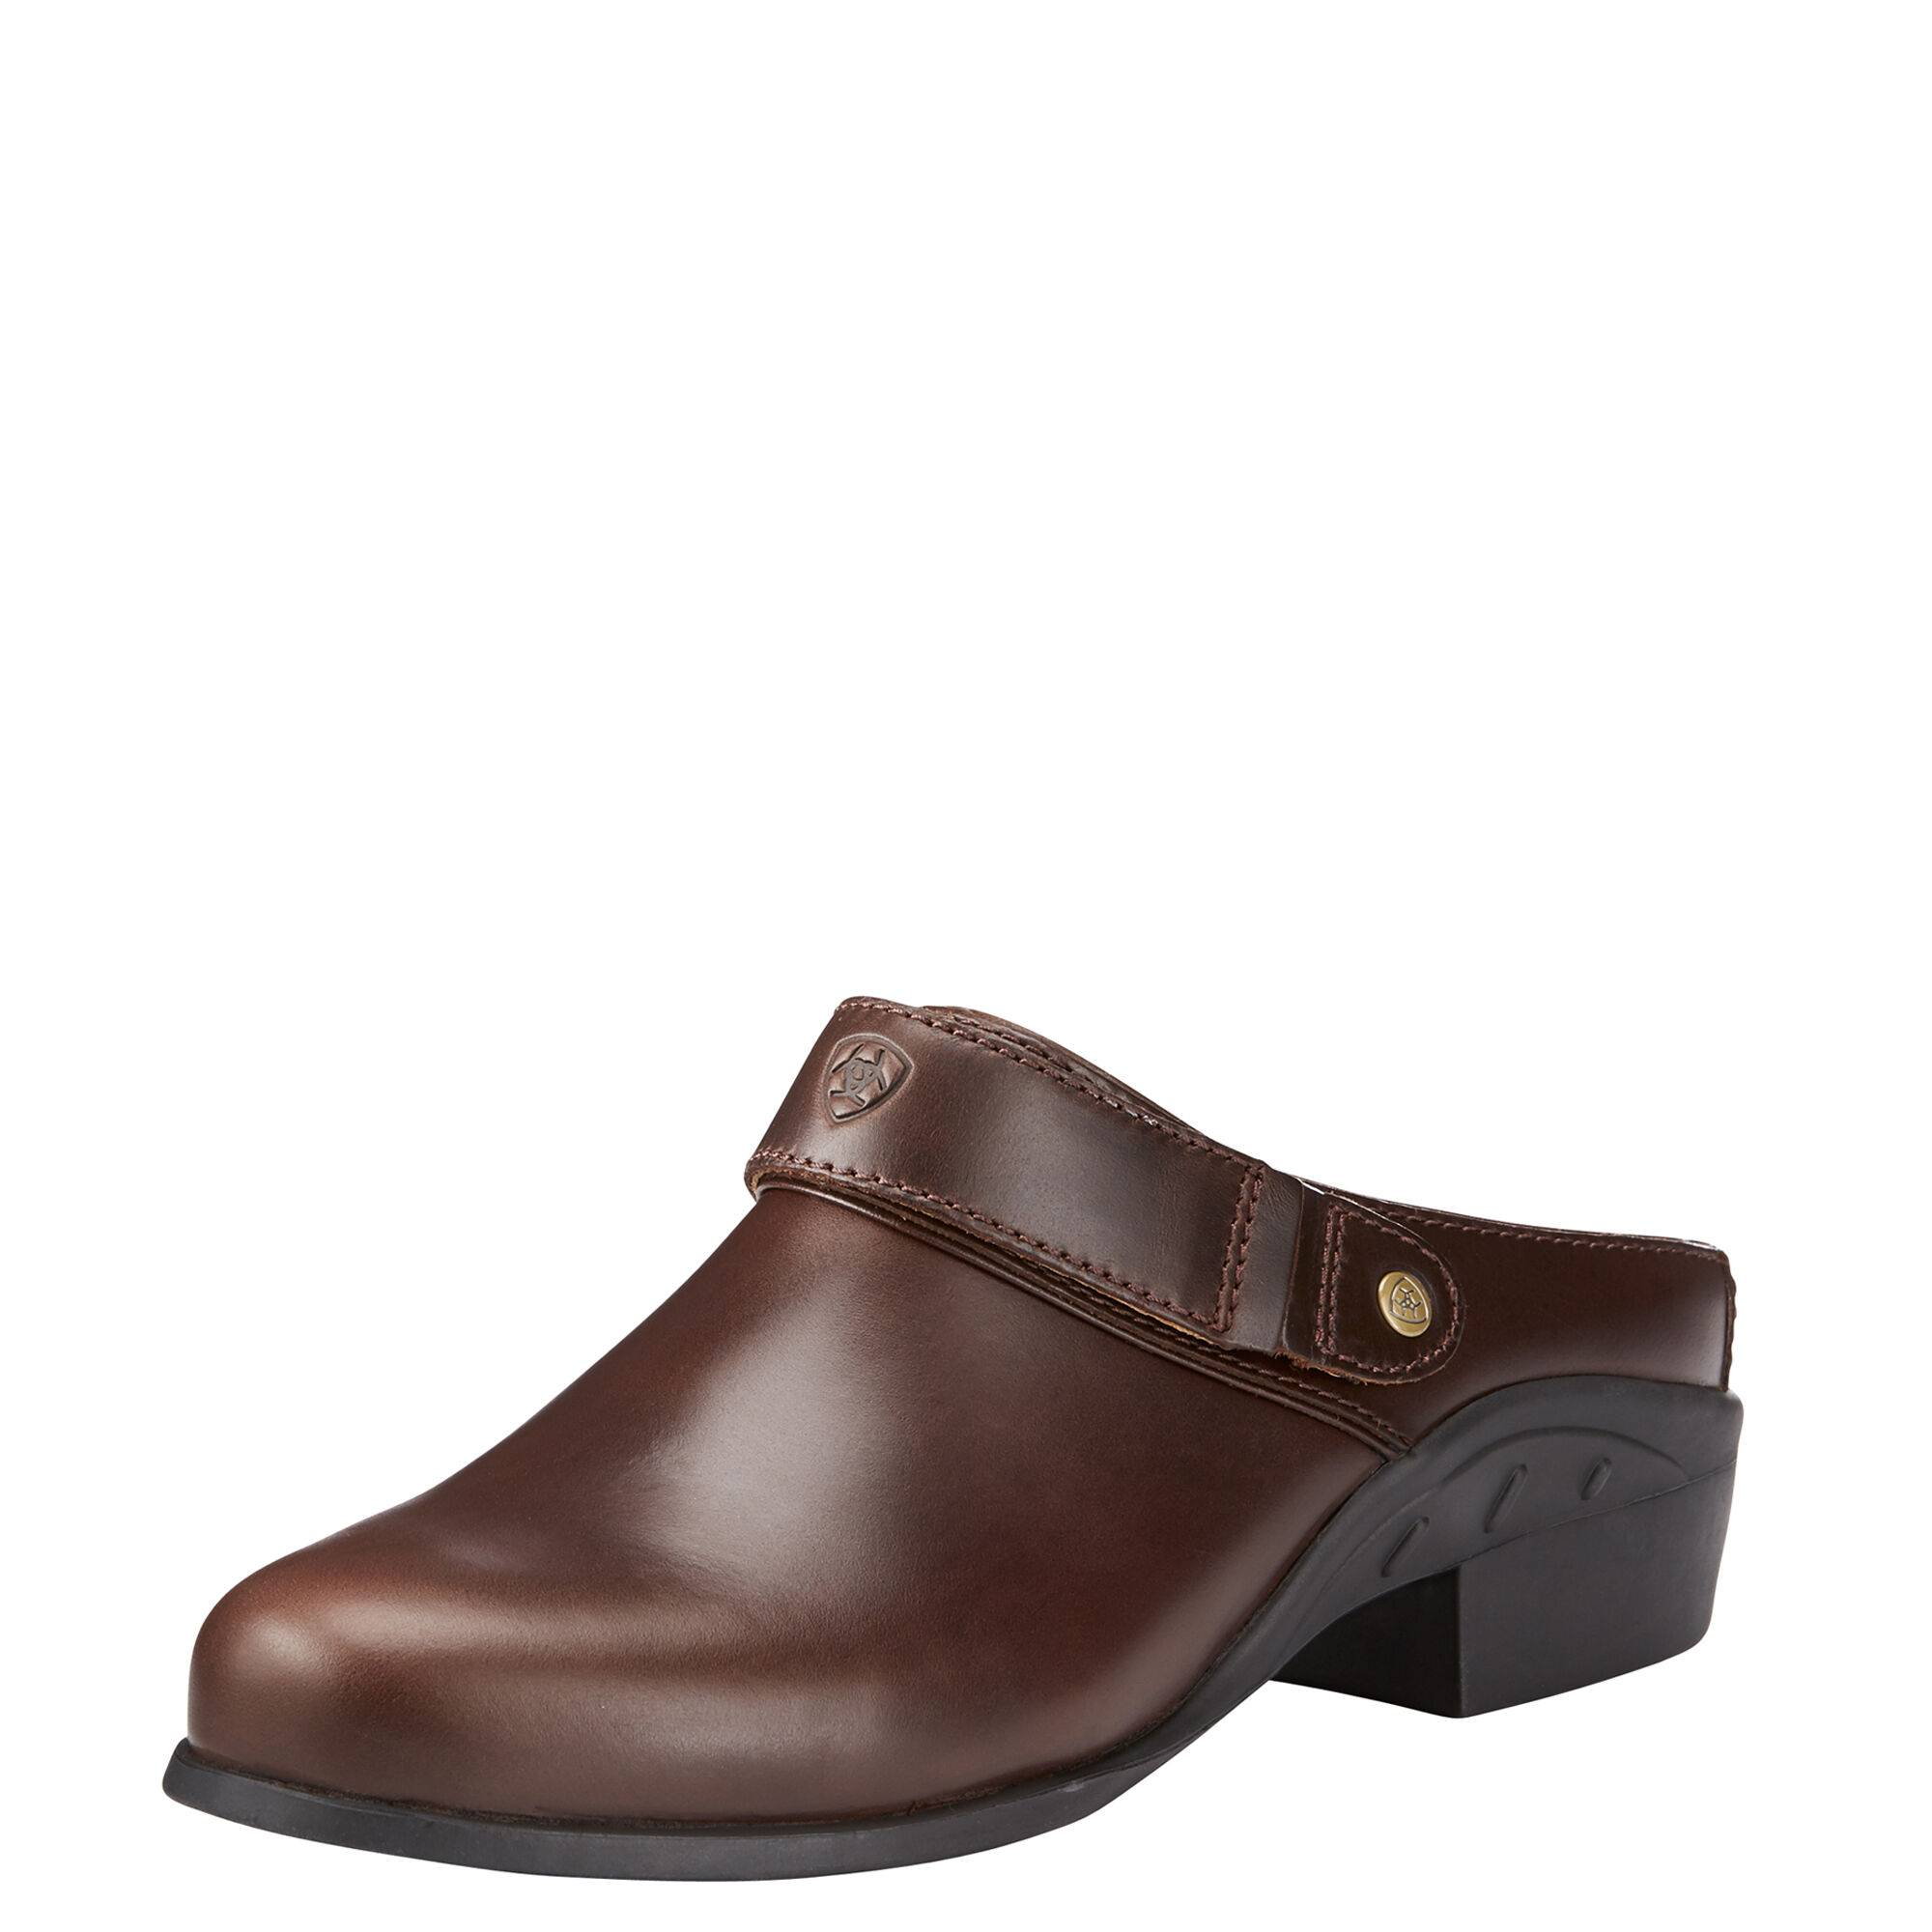 Ariat Women's Sport Mule in Waxed Chocolate Leather, Size 11 B / Medium by Ariat